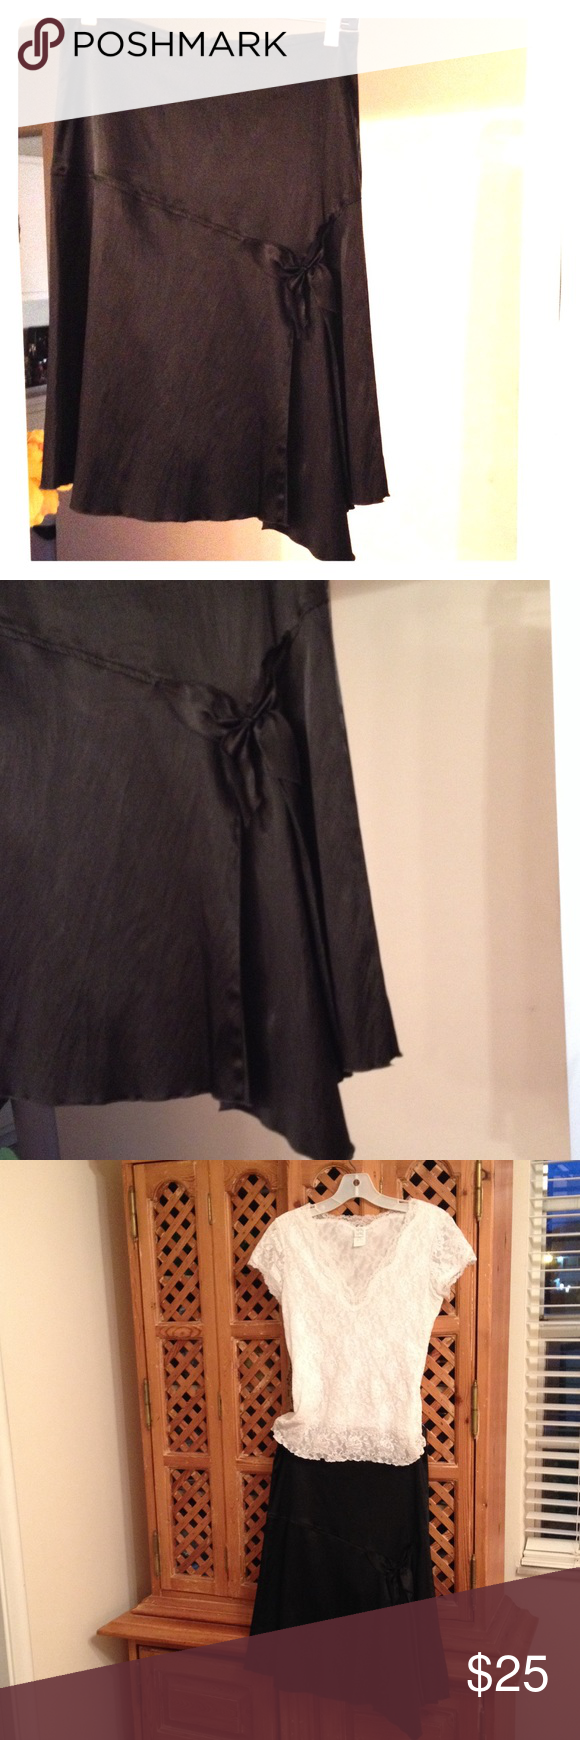 NORDSTROM BLACK FAUX SATIN SKIRT. Nordstrom asymmetrical black faux satin skirt. Photos do not capture how stunning the skirt is. Nicely detailed with black flat bow and interesting lines. Zips in back. Material is 69% Acetate, 26% Nylon and 5% Spandex. Designed by Ashley. Size S. Worn twice. Fabulous with a dressy white top and black heels! Skirts Asymmetrical